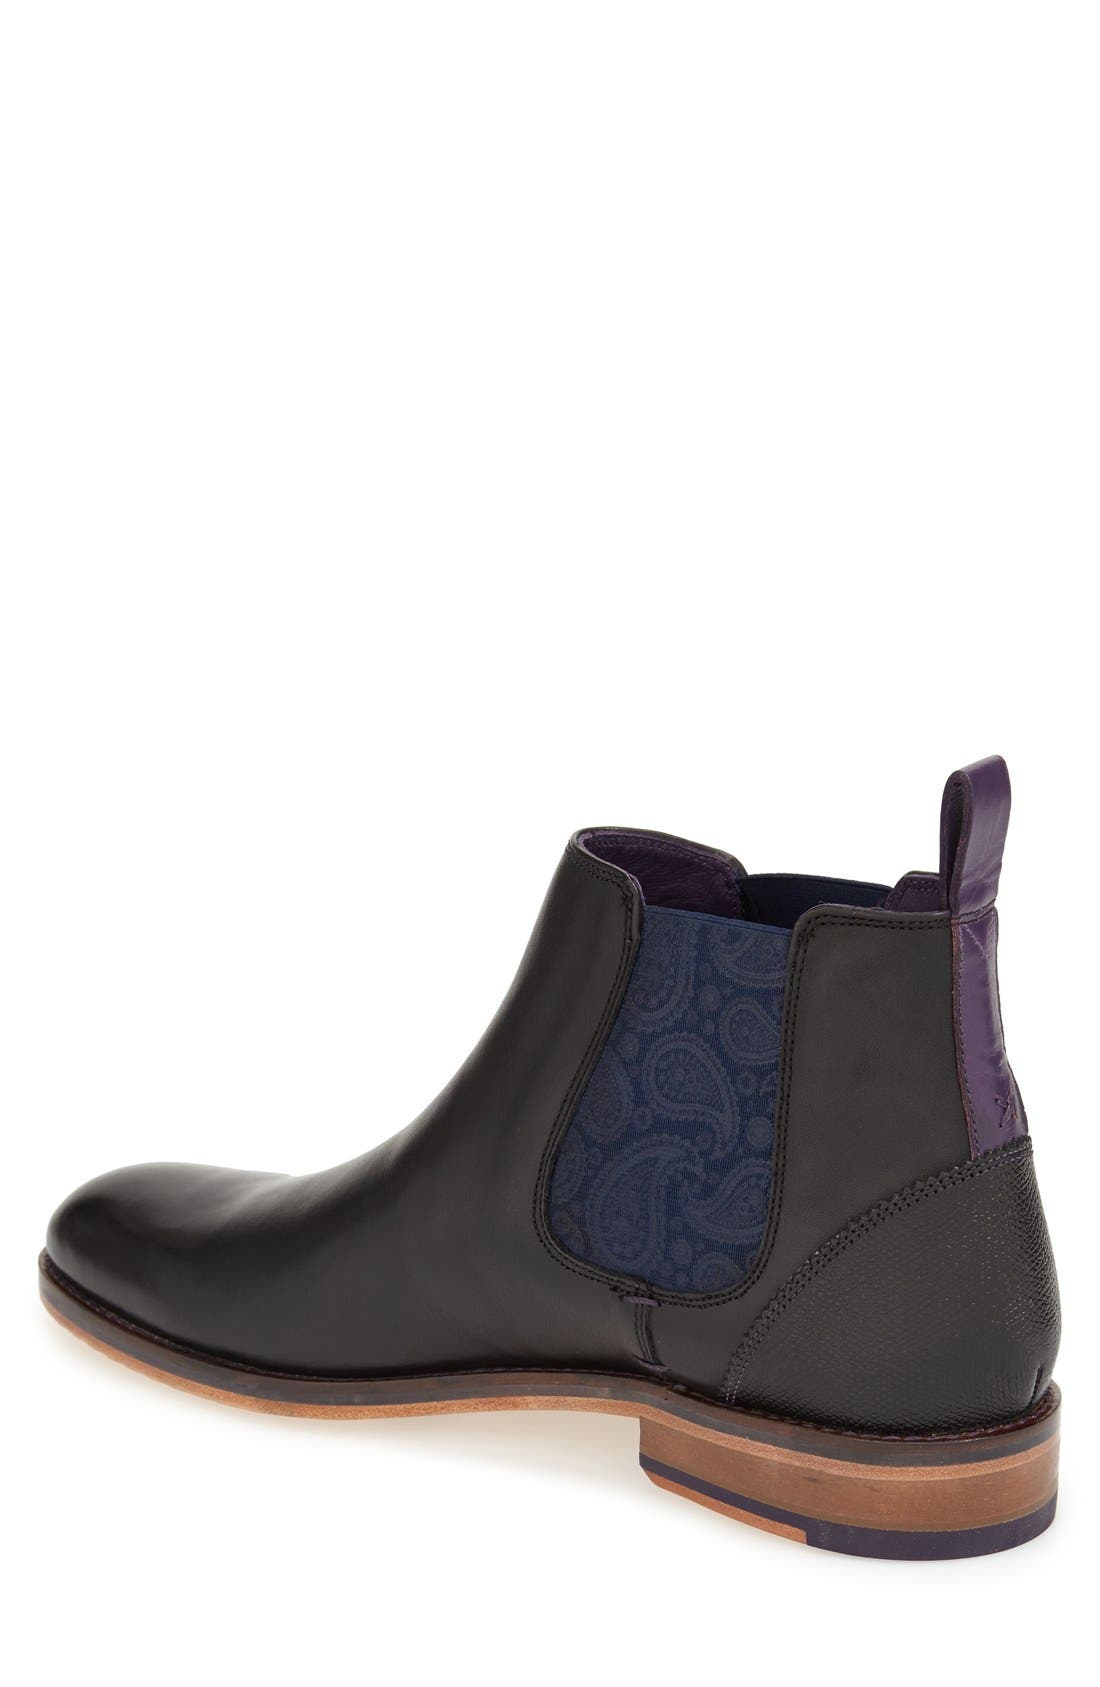 'Camroon 4' Chelsea Boot,                             Alternate thumbnail 2, color,                             BLACK LEATHER